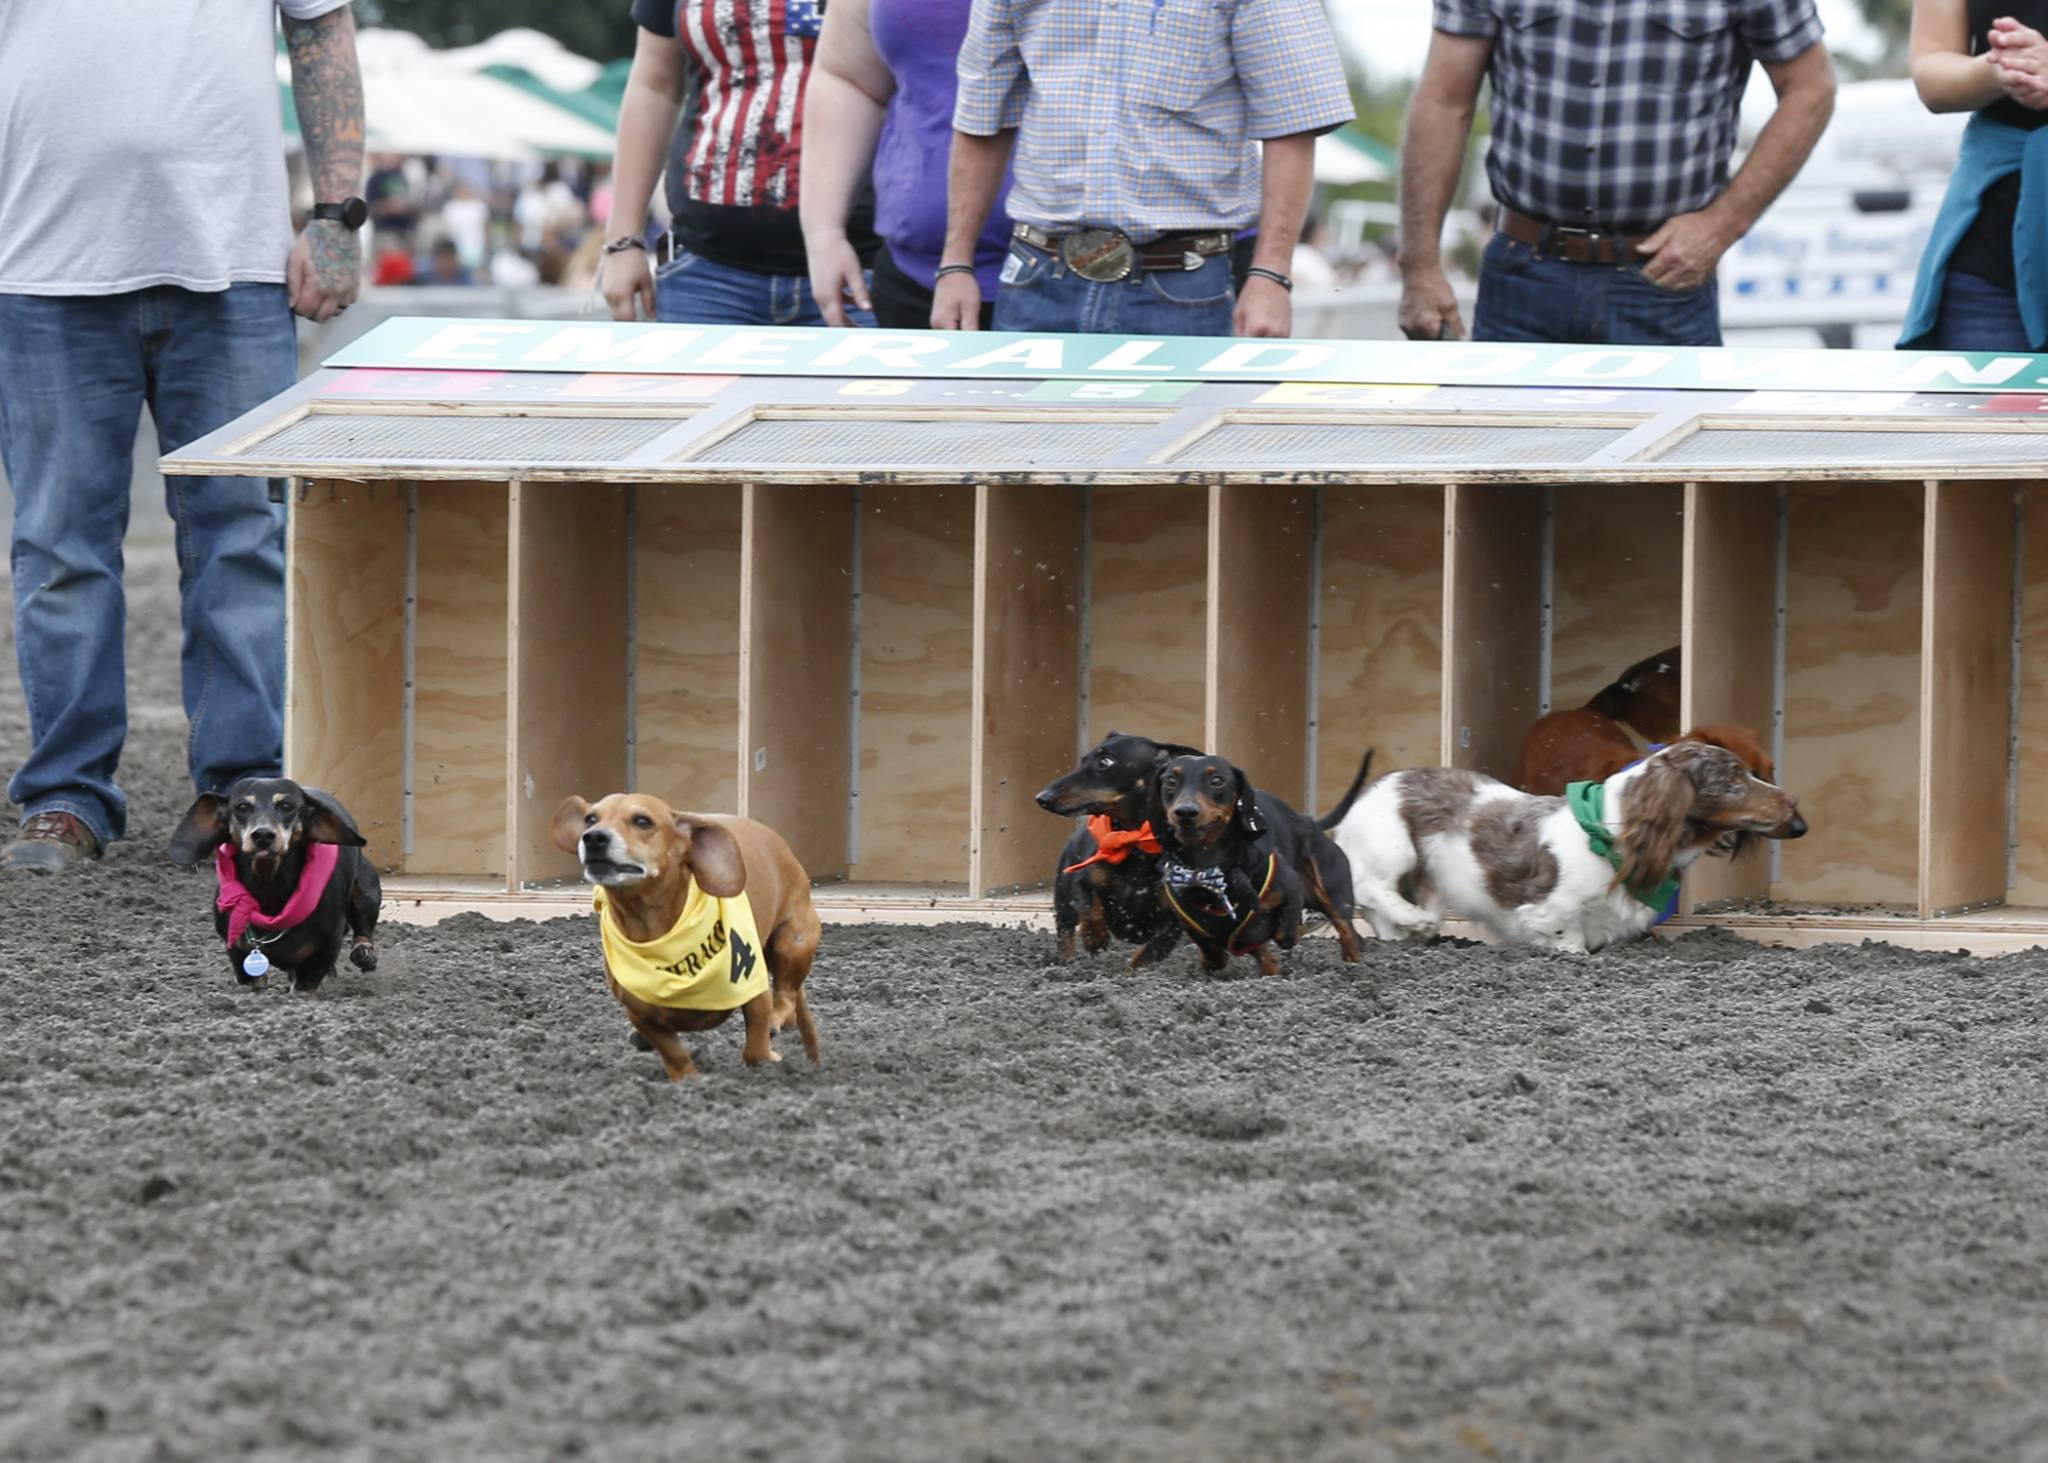 Wiener Dog Wiener Wannabe Amp Corgi Races Emerald Downs